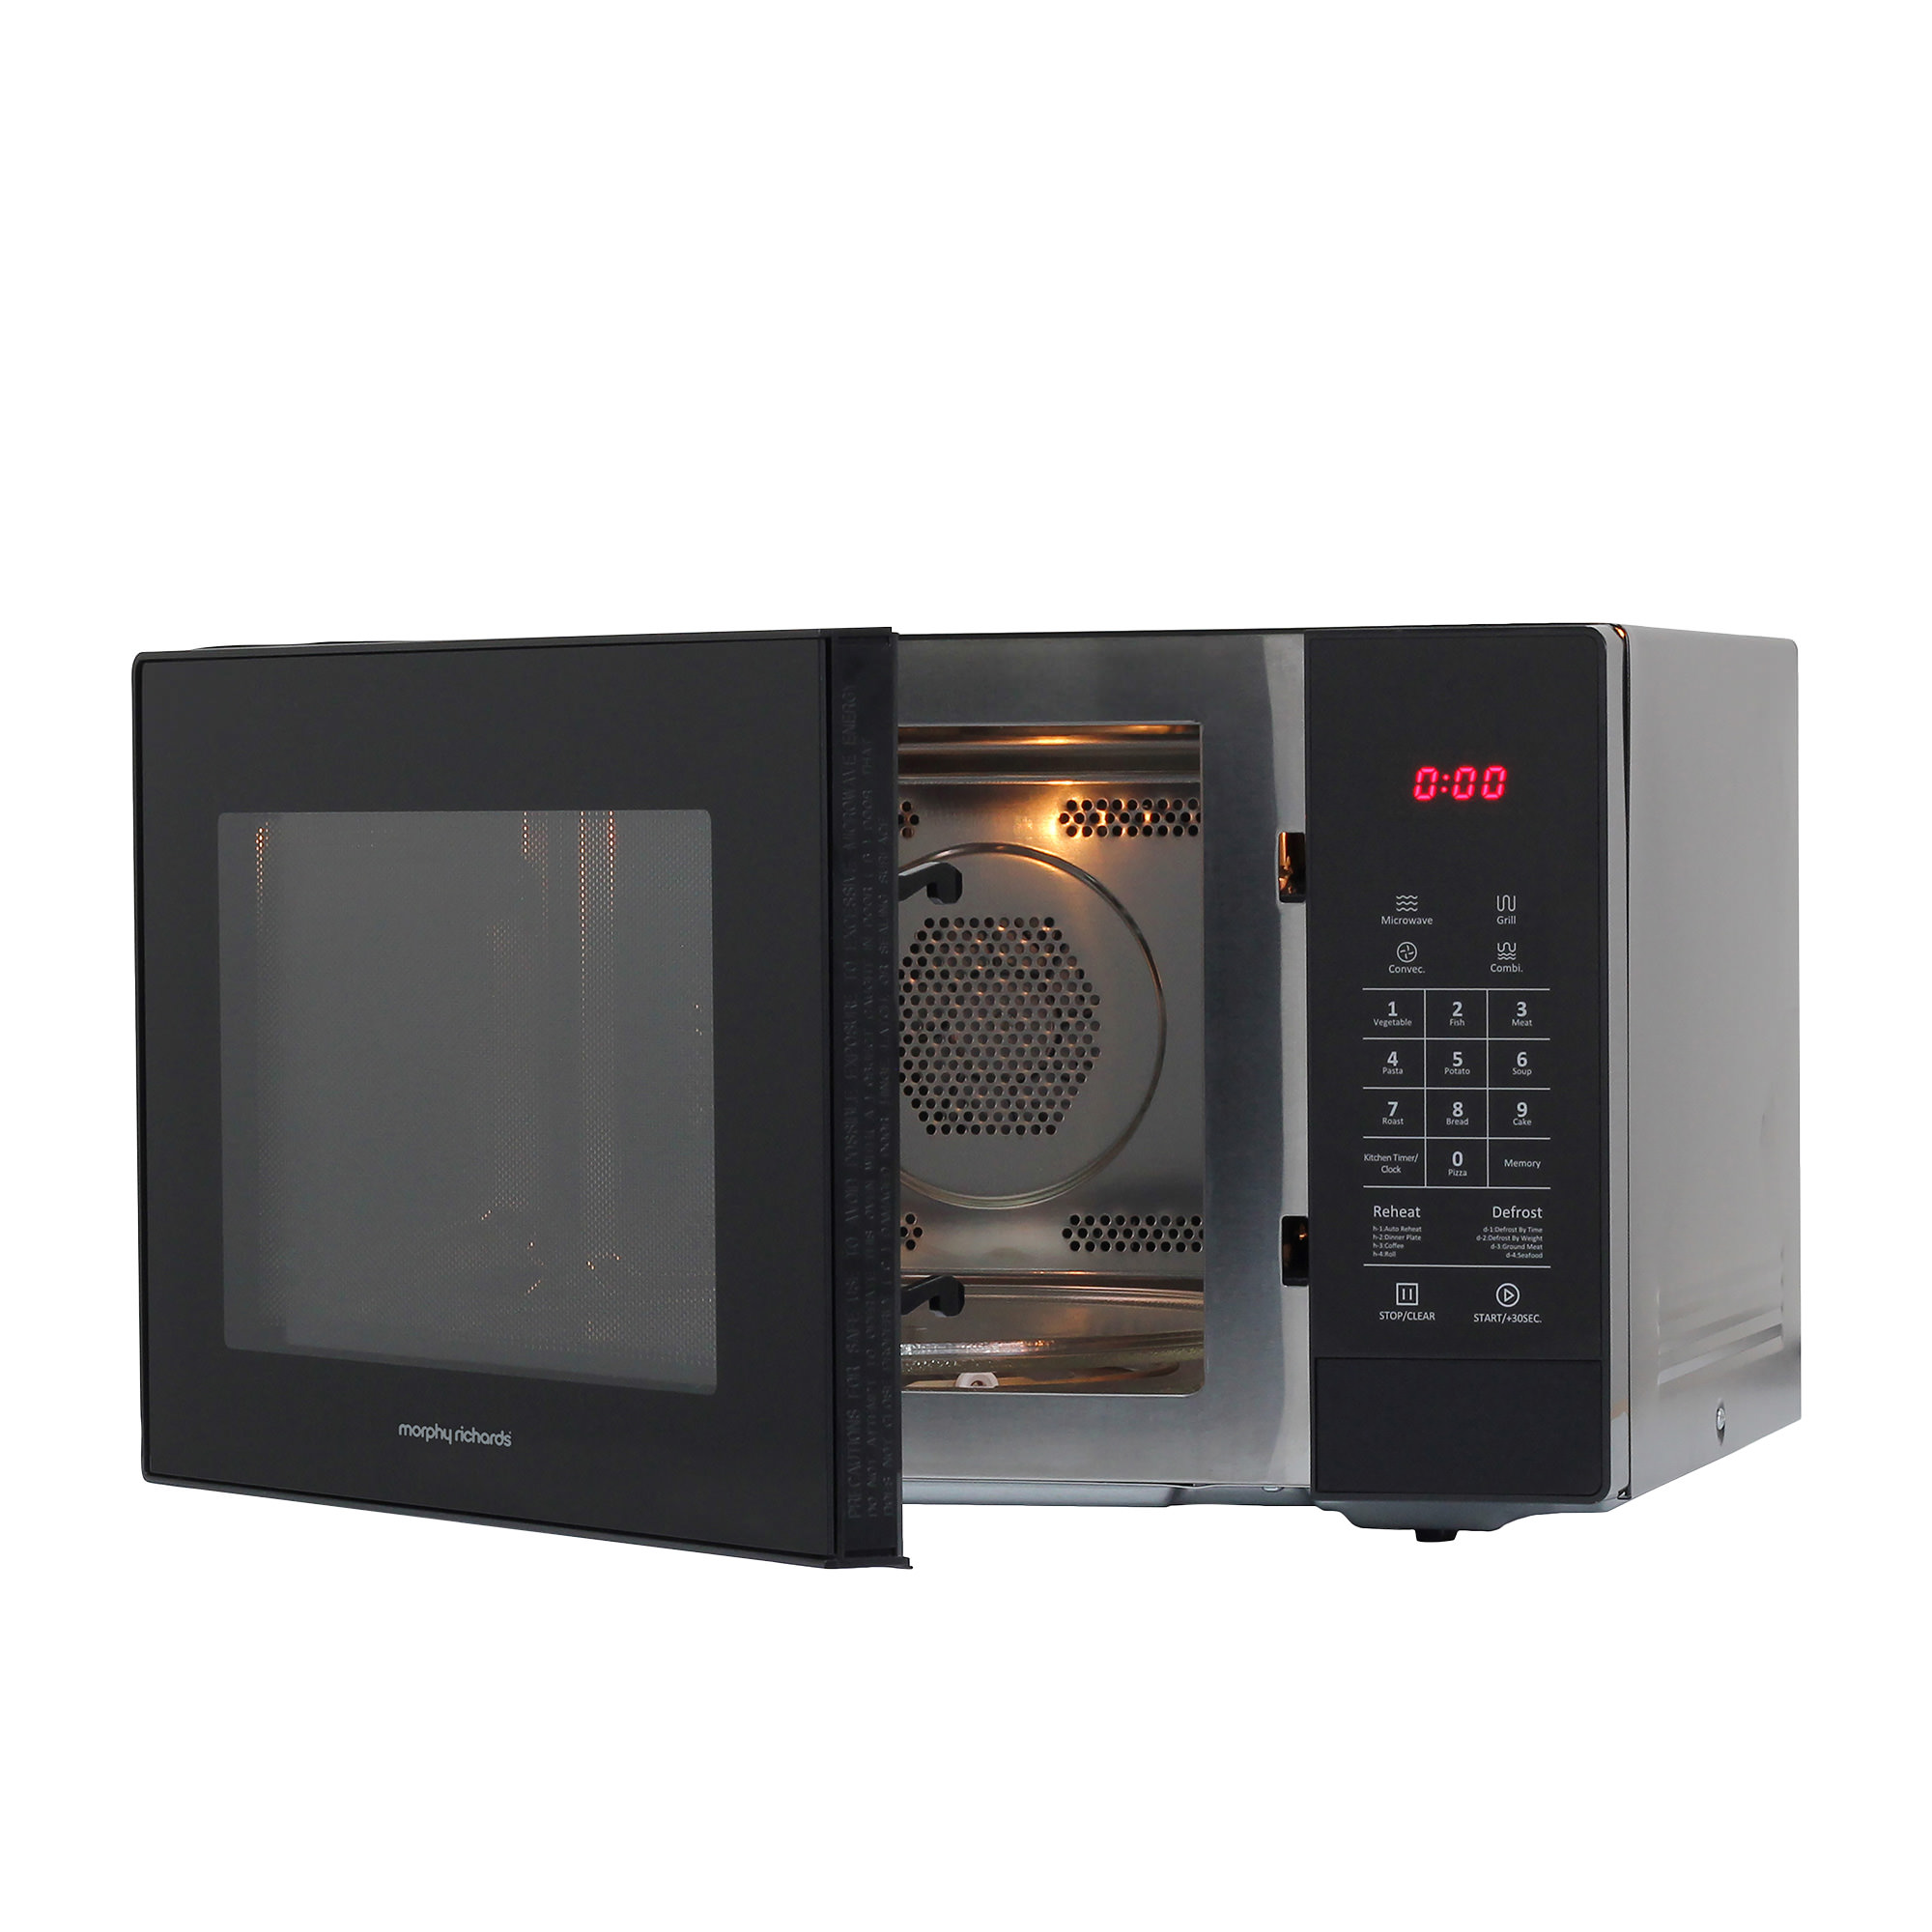 Morphy Richards Microwave Oven 34L w/ Grill and Convection image #3